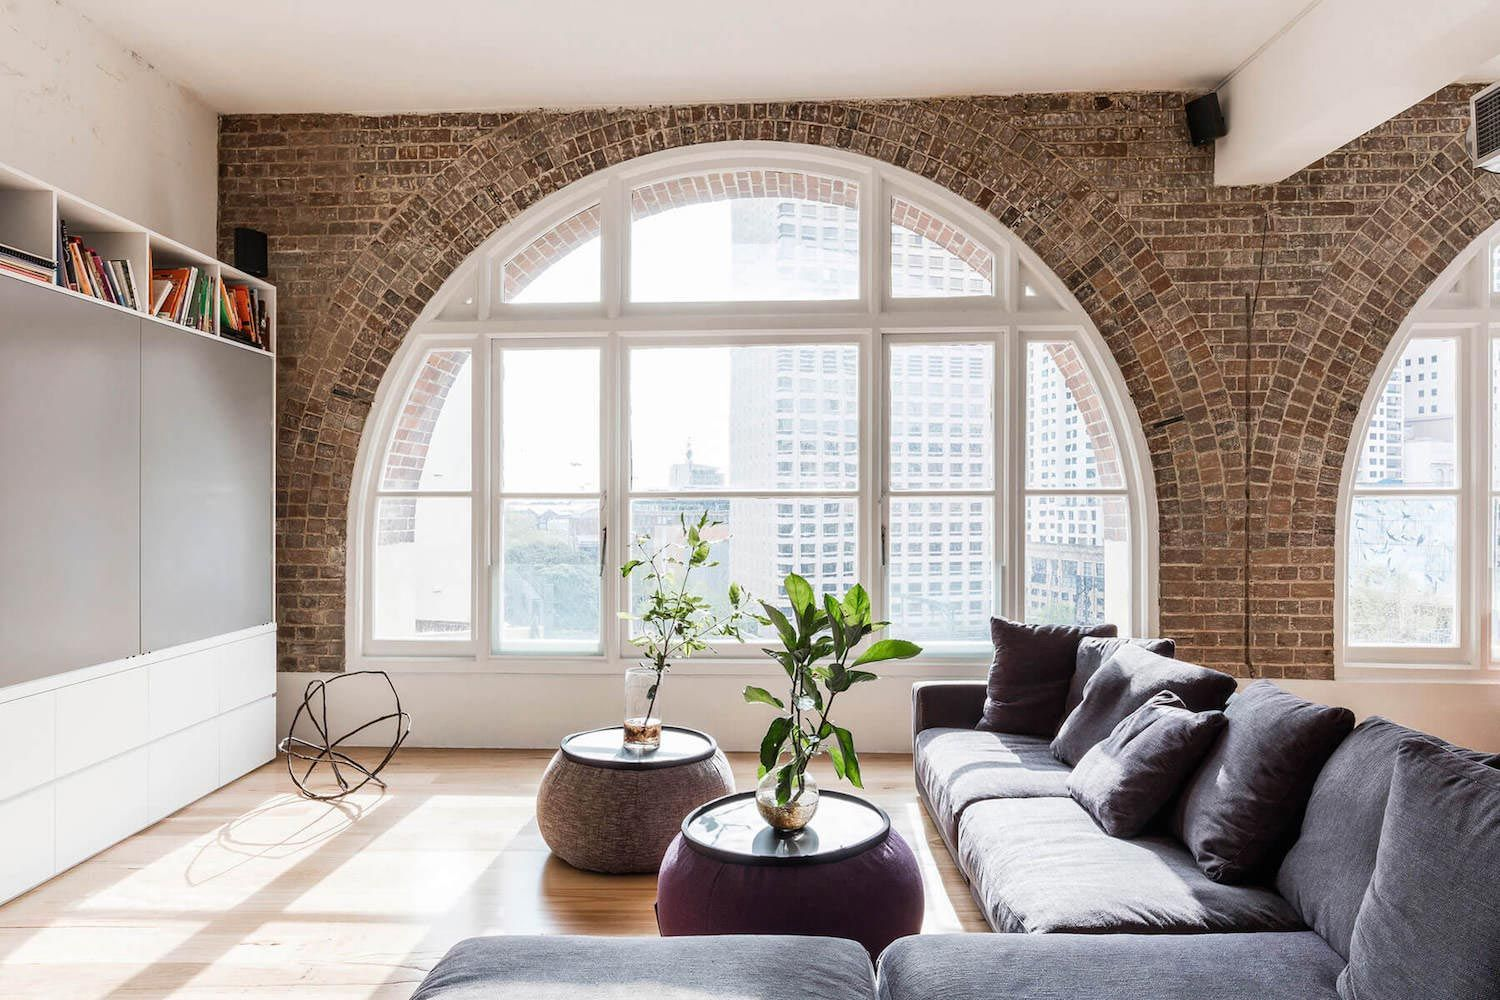 Roof Warehouse Redesign With Beautiful Arched Windows   CAANdesign | Architecture  And Home Design Blog